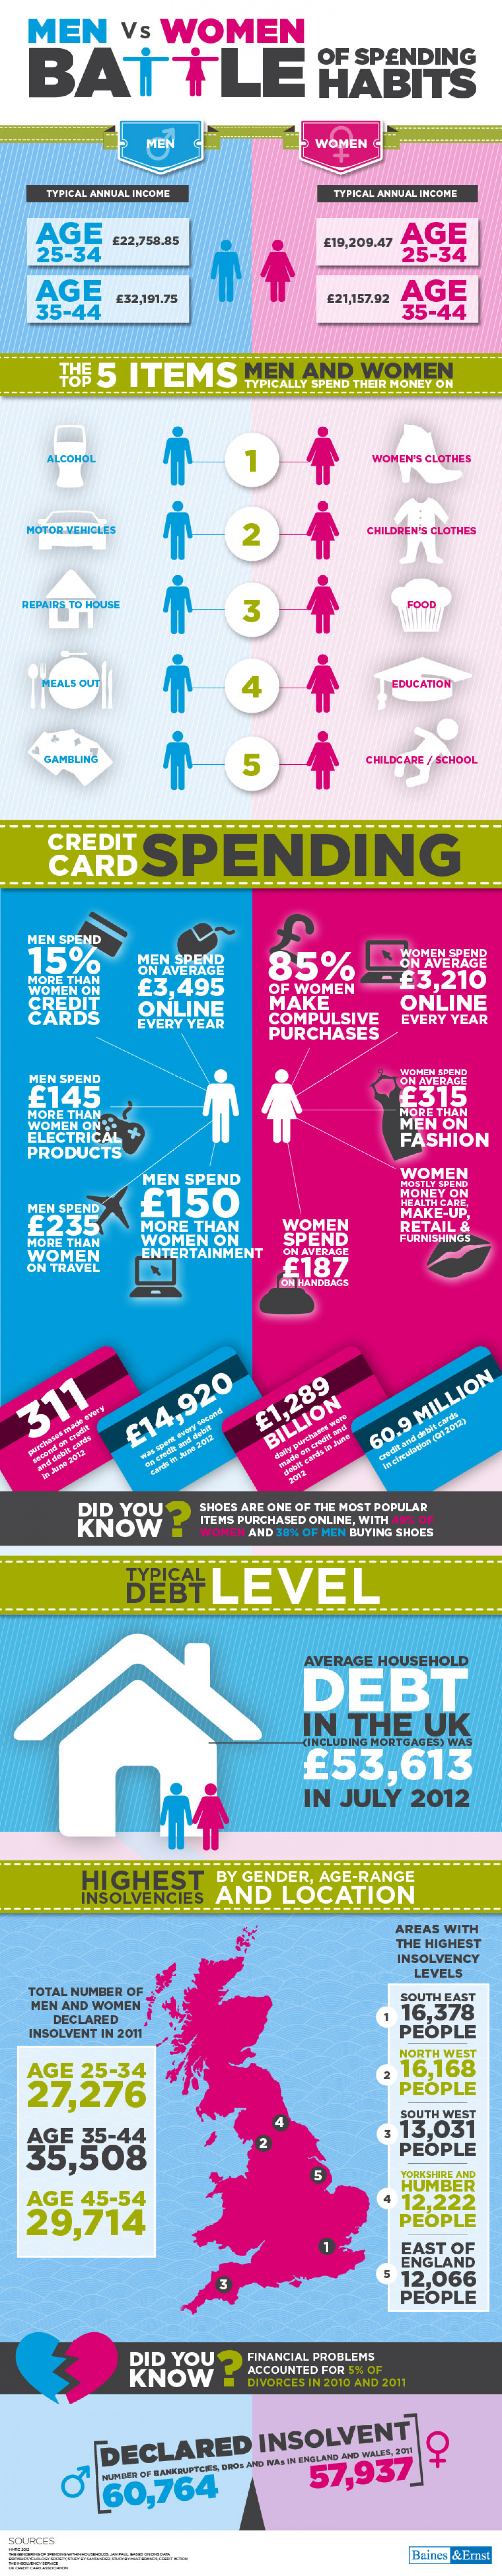 Men Vs. Women - Spending Habits Infographic